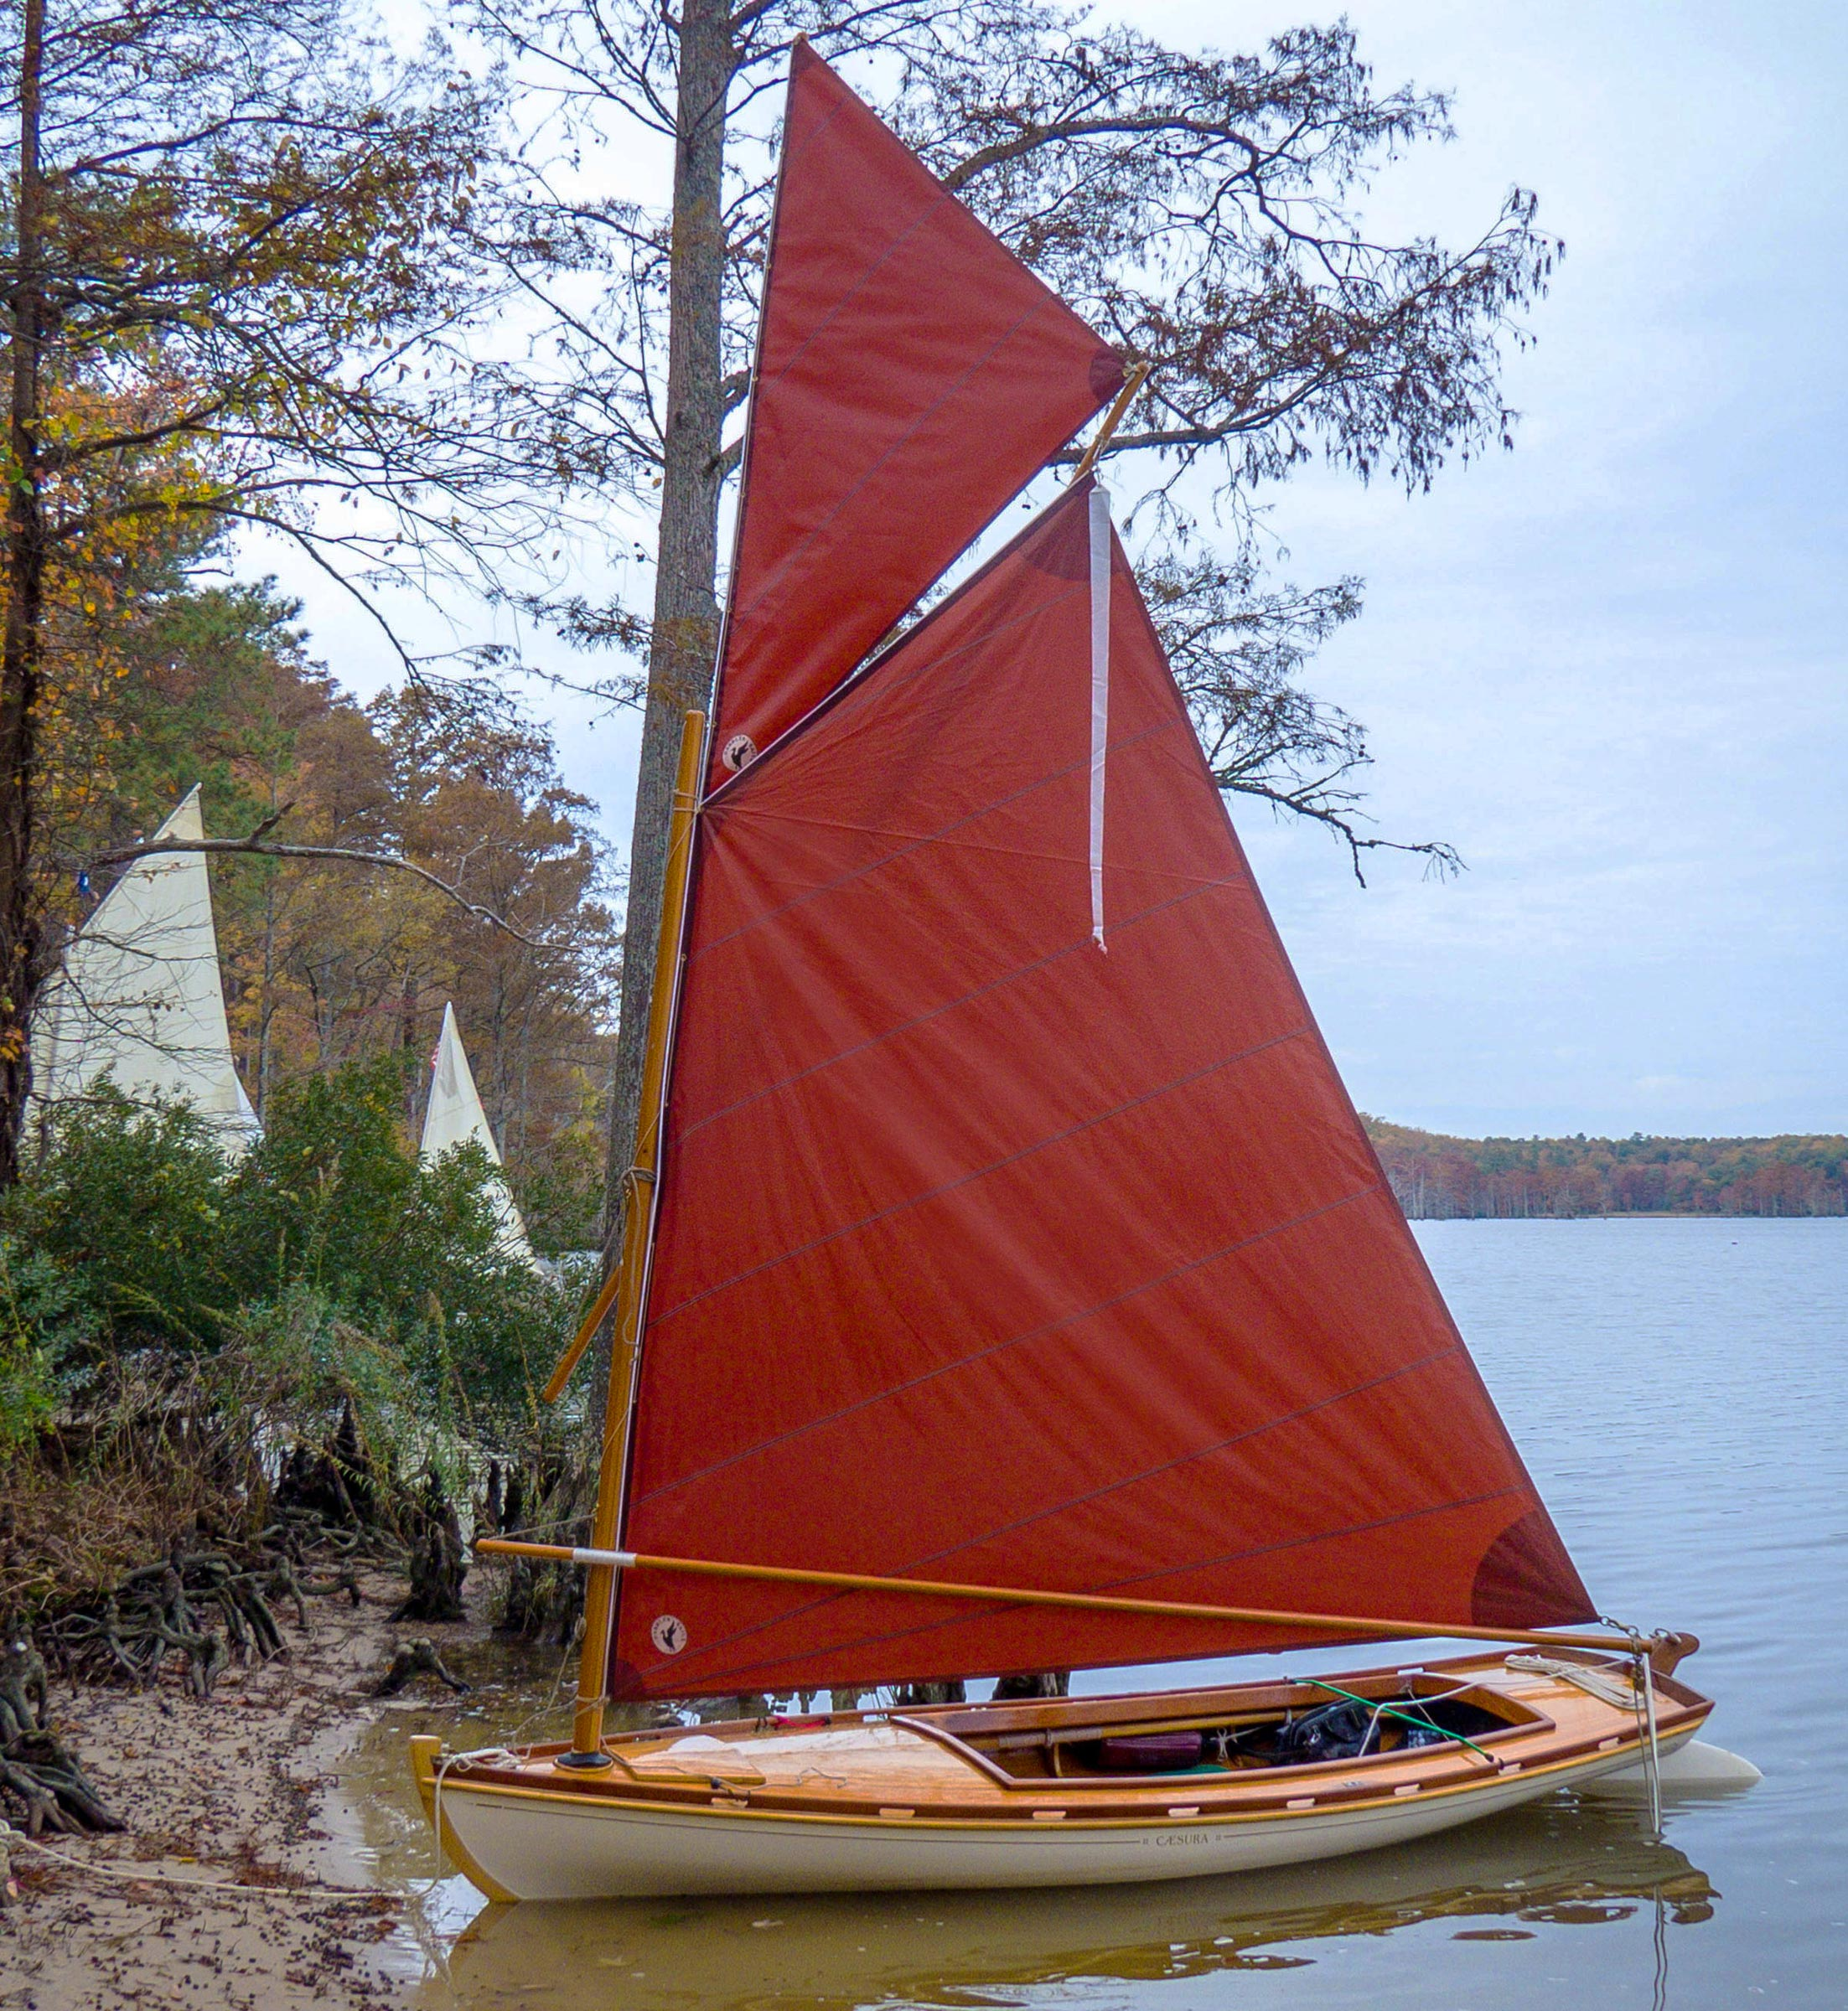 The placement of a melonseed skiff's mast so far forward, rules out setting the topsail while afloat. Other boats that have the mast set farther aft and offer the sailer good footing and stability won't have to be rigged while ashore.